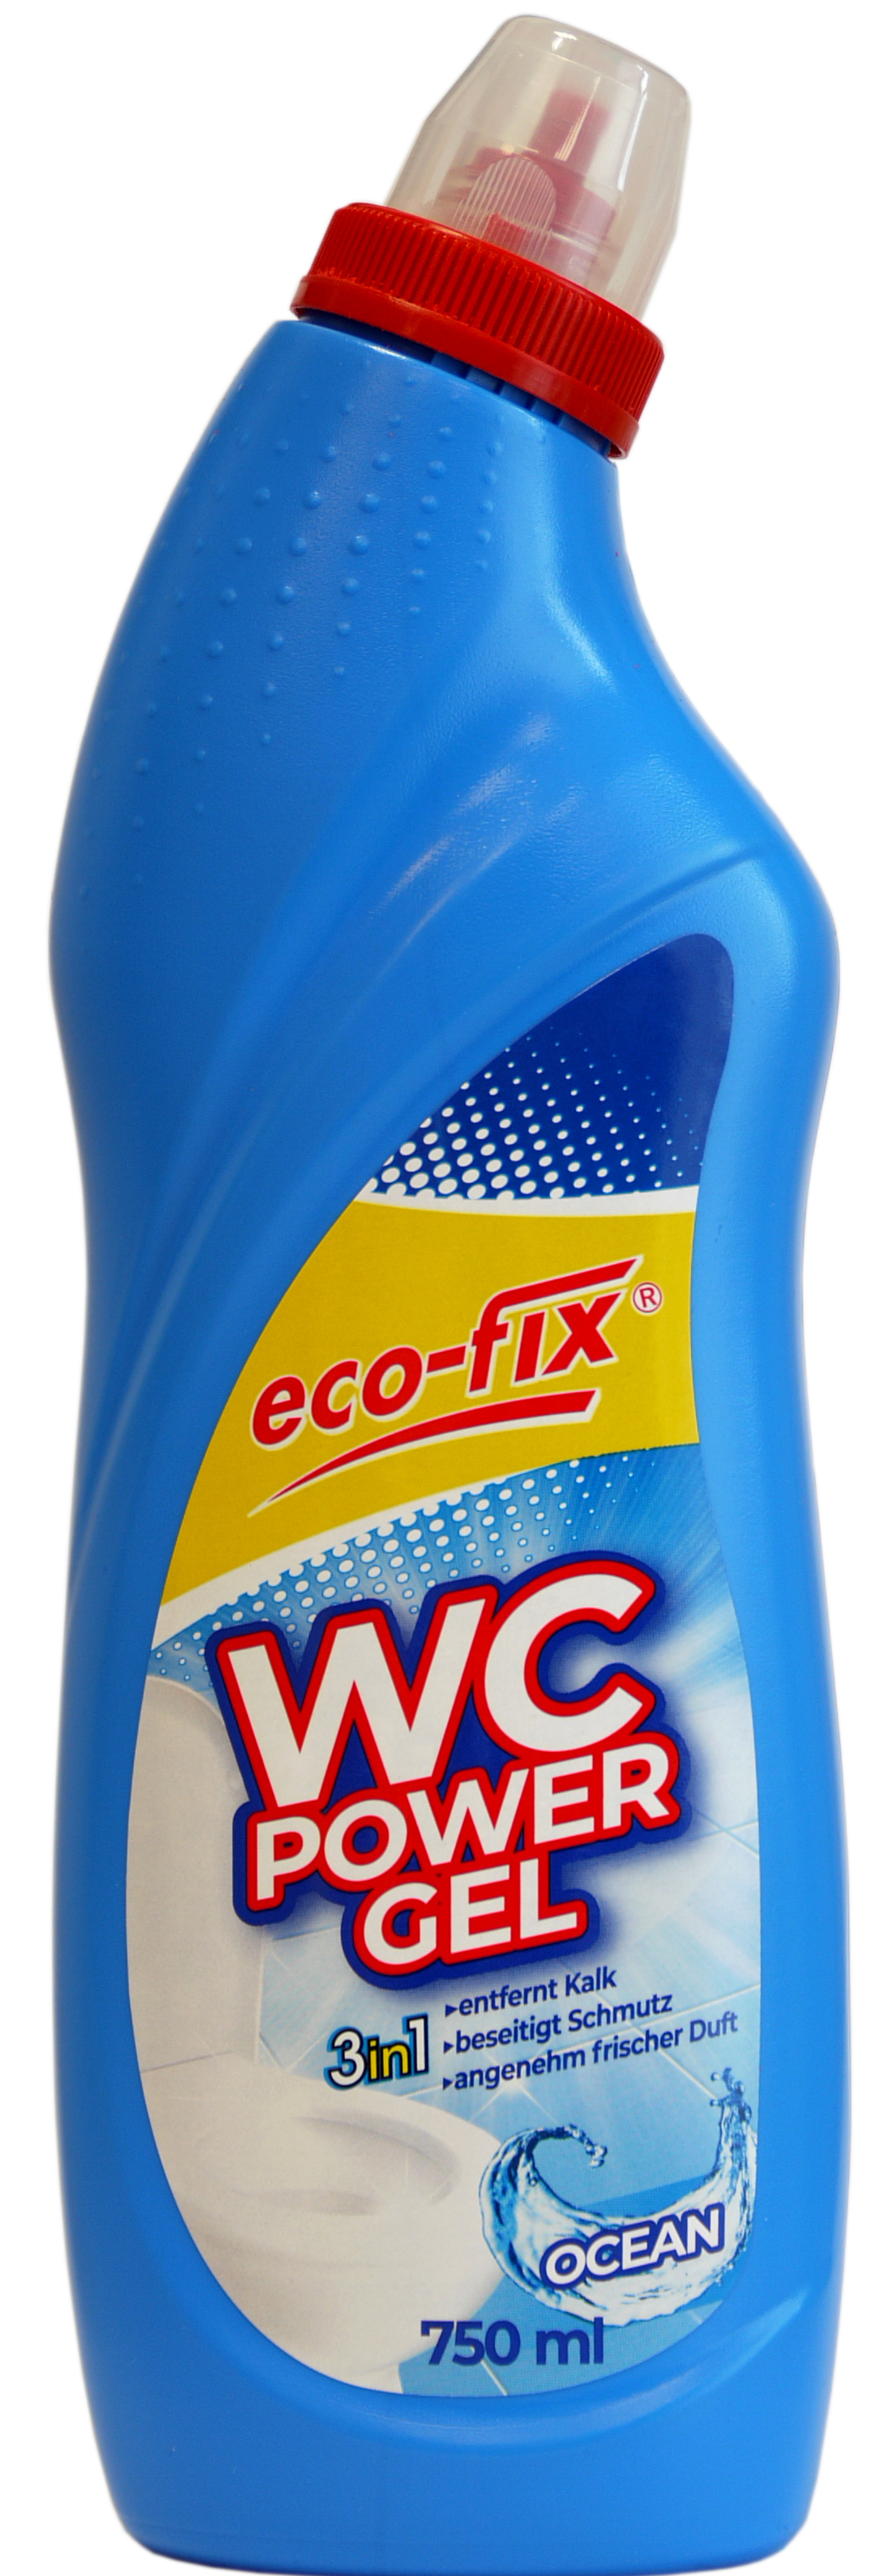 01860 - eco-fix WC Power Gel 750ml- Ocean